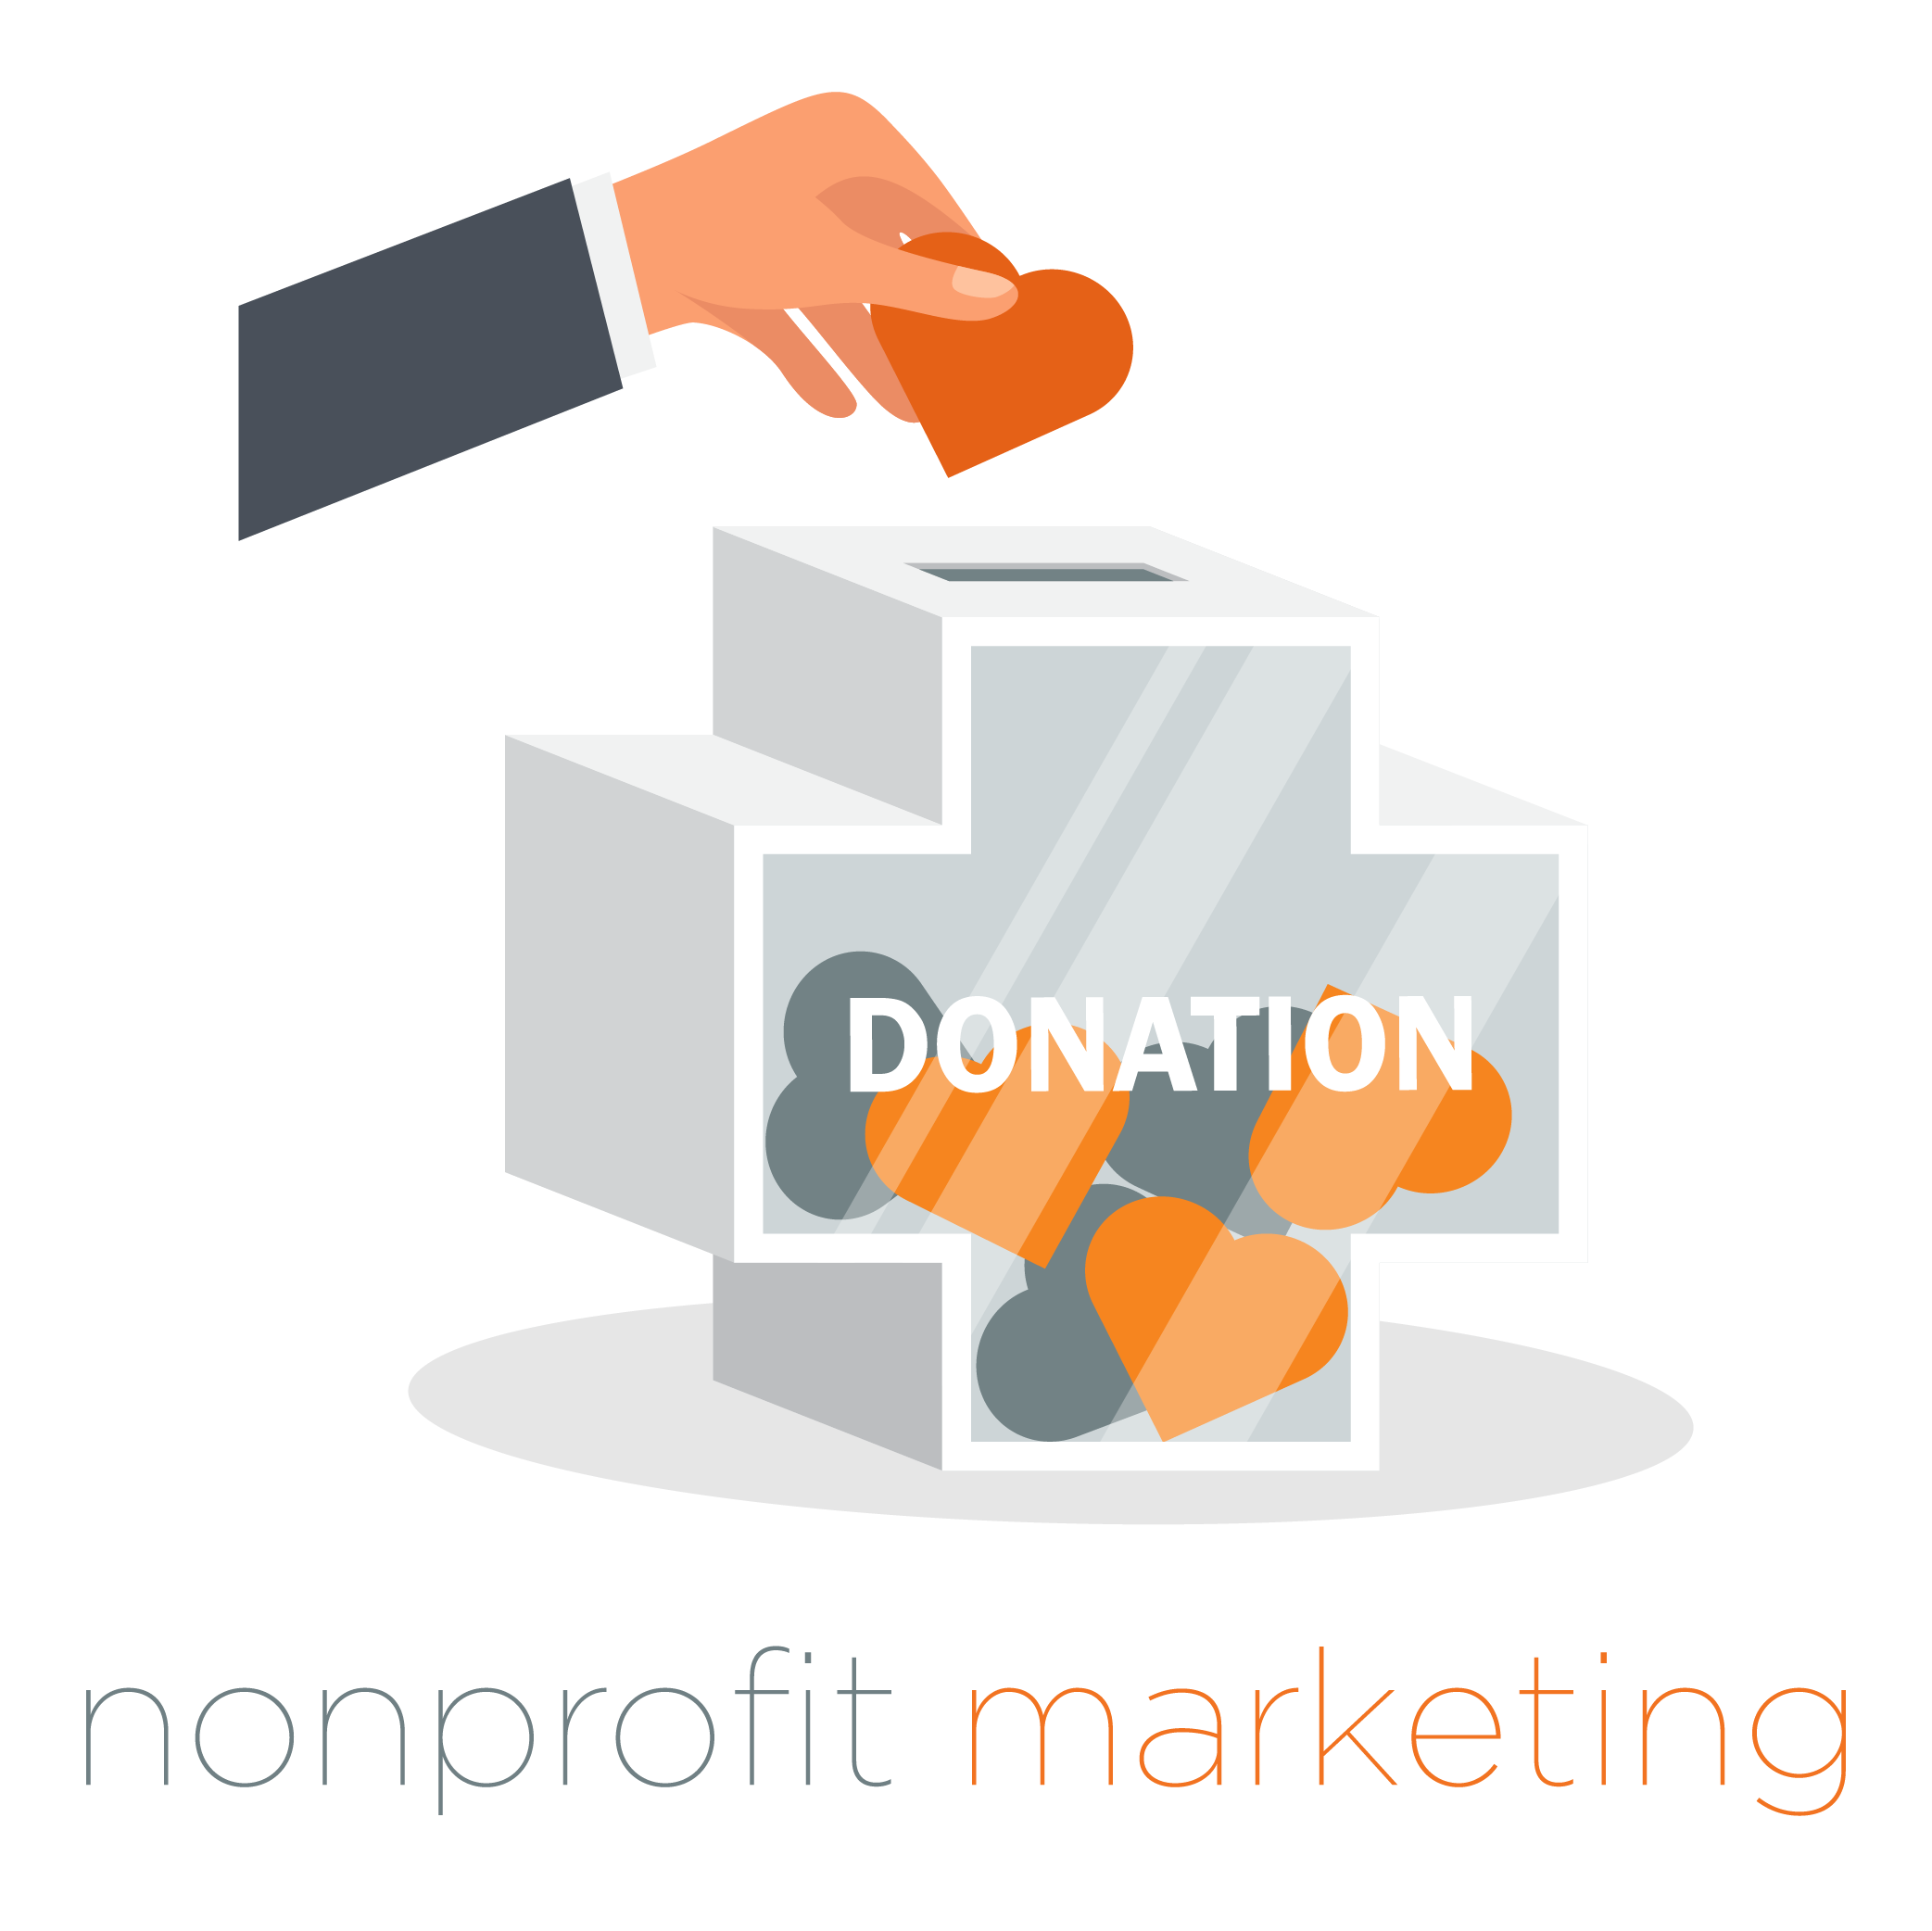 nonprofit marketing-01.png